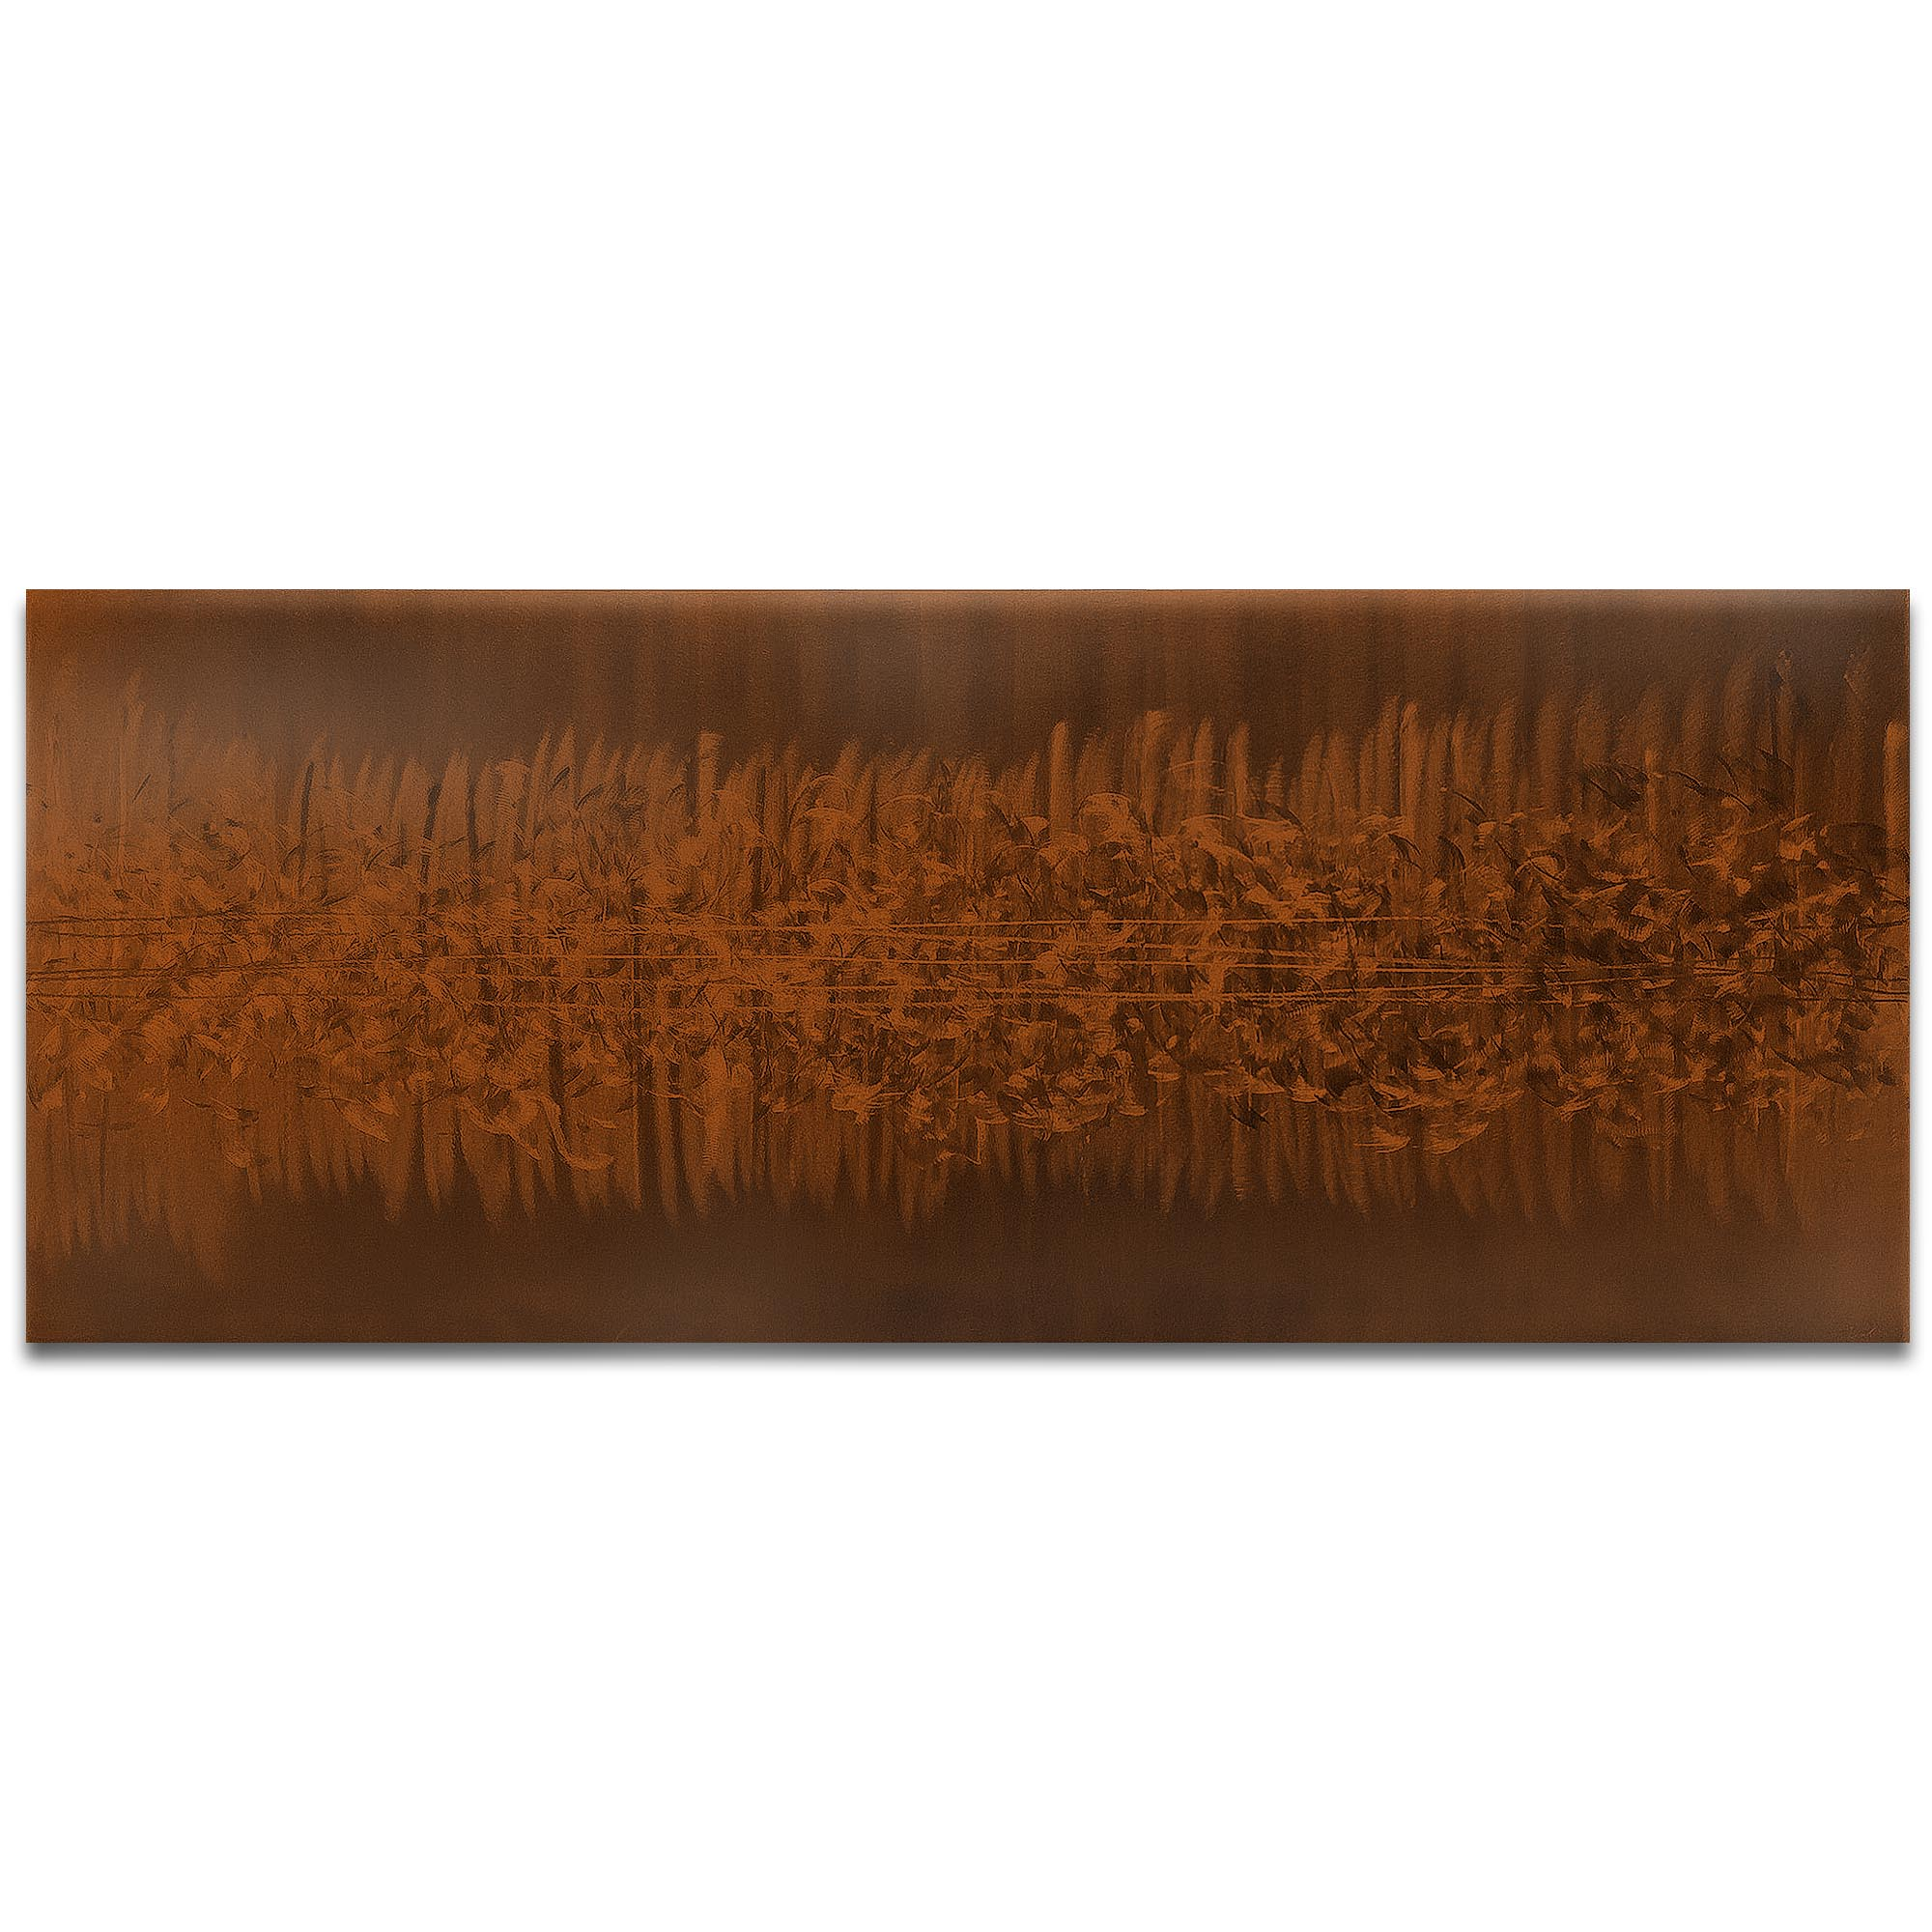 Helena Martin 'Static Brown' 60in x 24in Original Abstract Art on Ground and Painted Metal